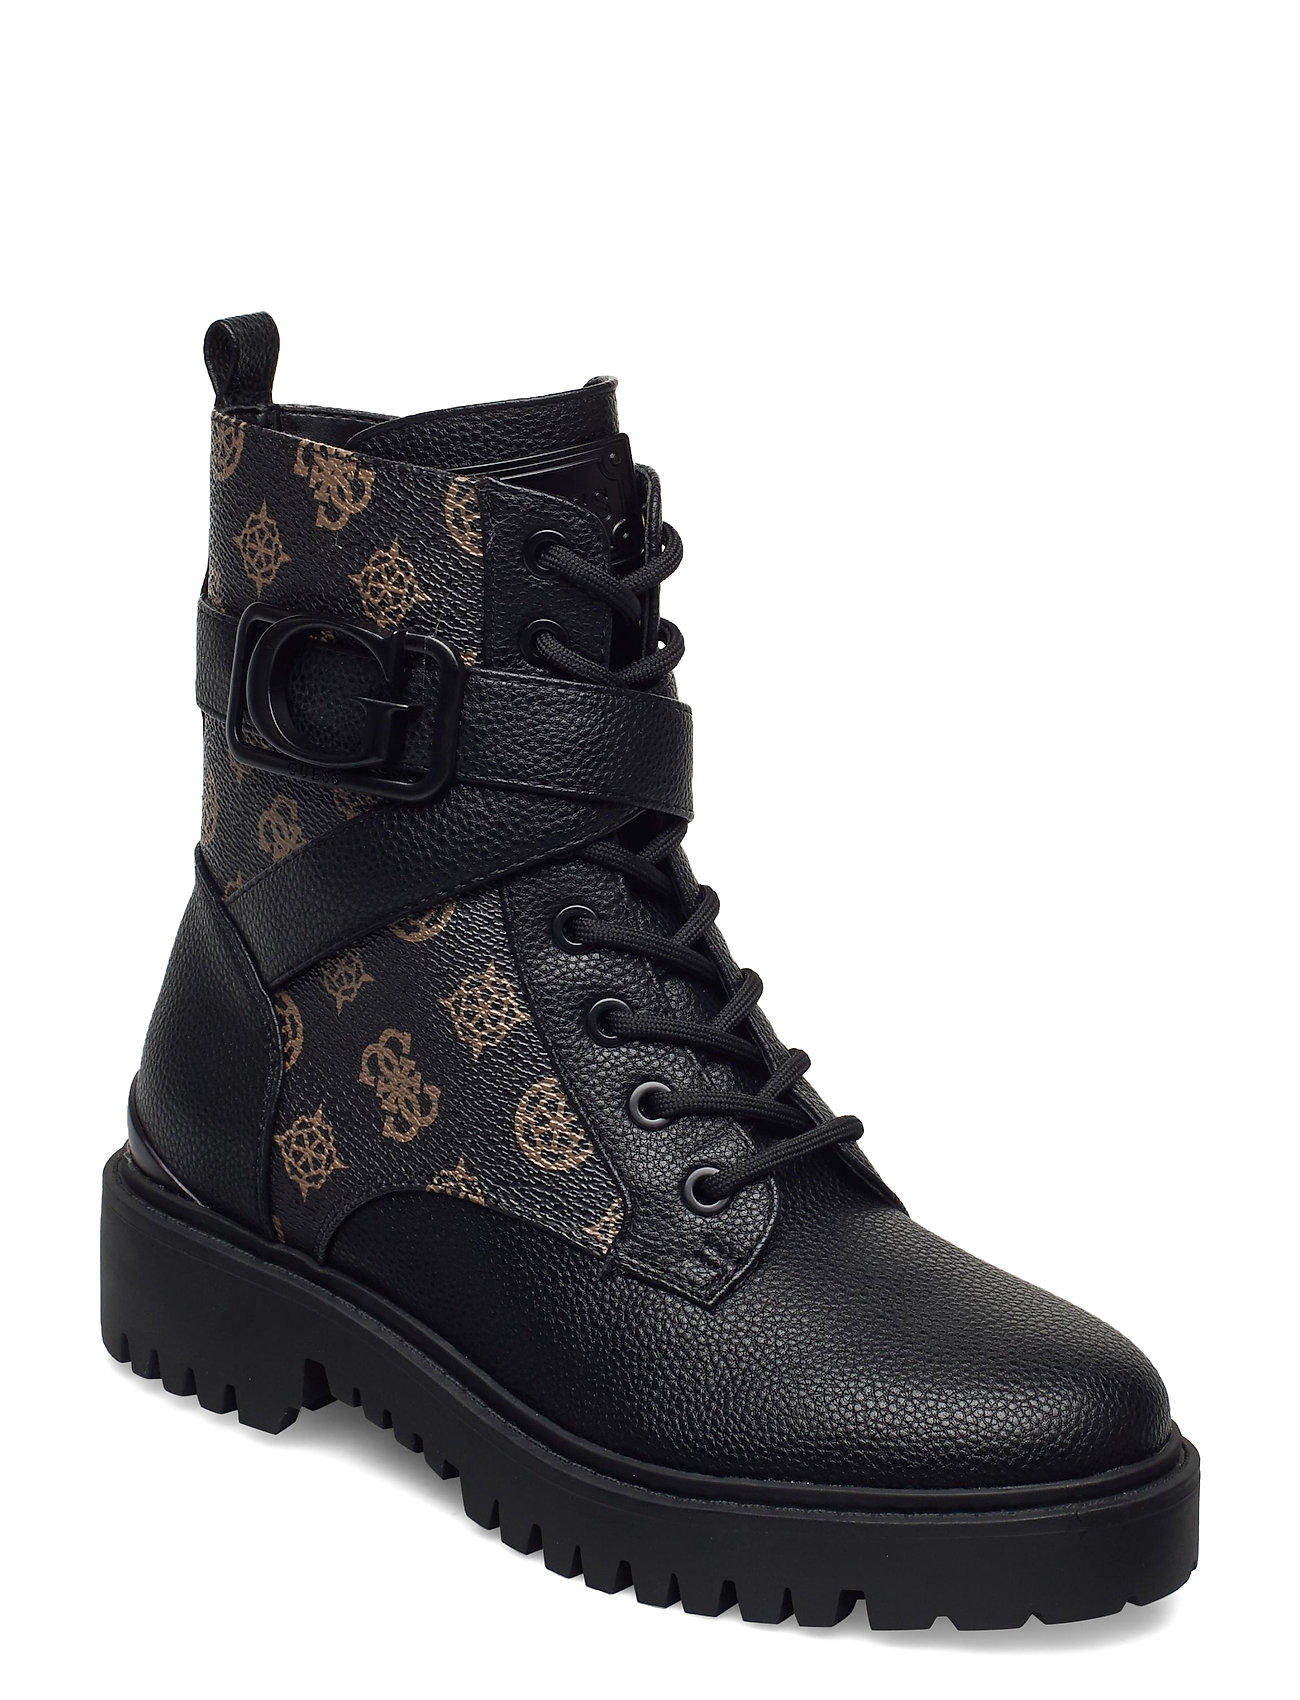 Image of Orana/Stivaletto /Leat Shoes Boots Ankle Boots Ankle Boot - Flat Brun GUESS (3465798603)